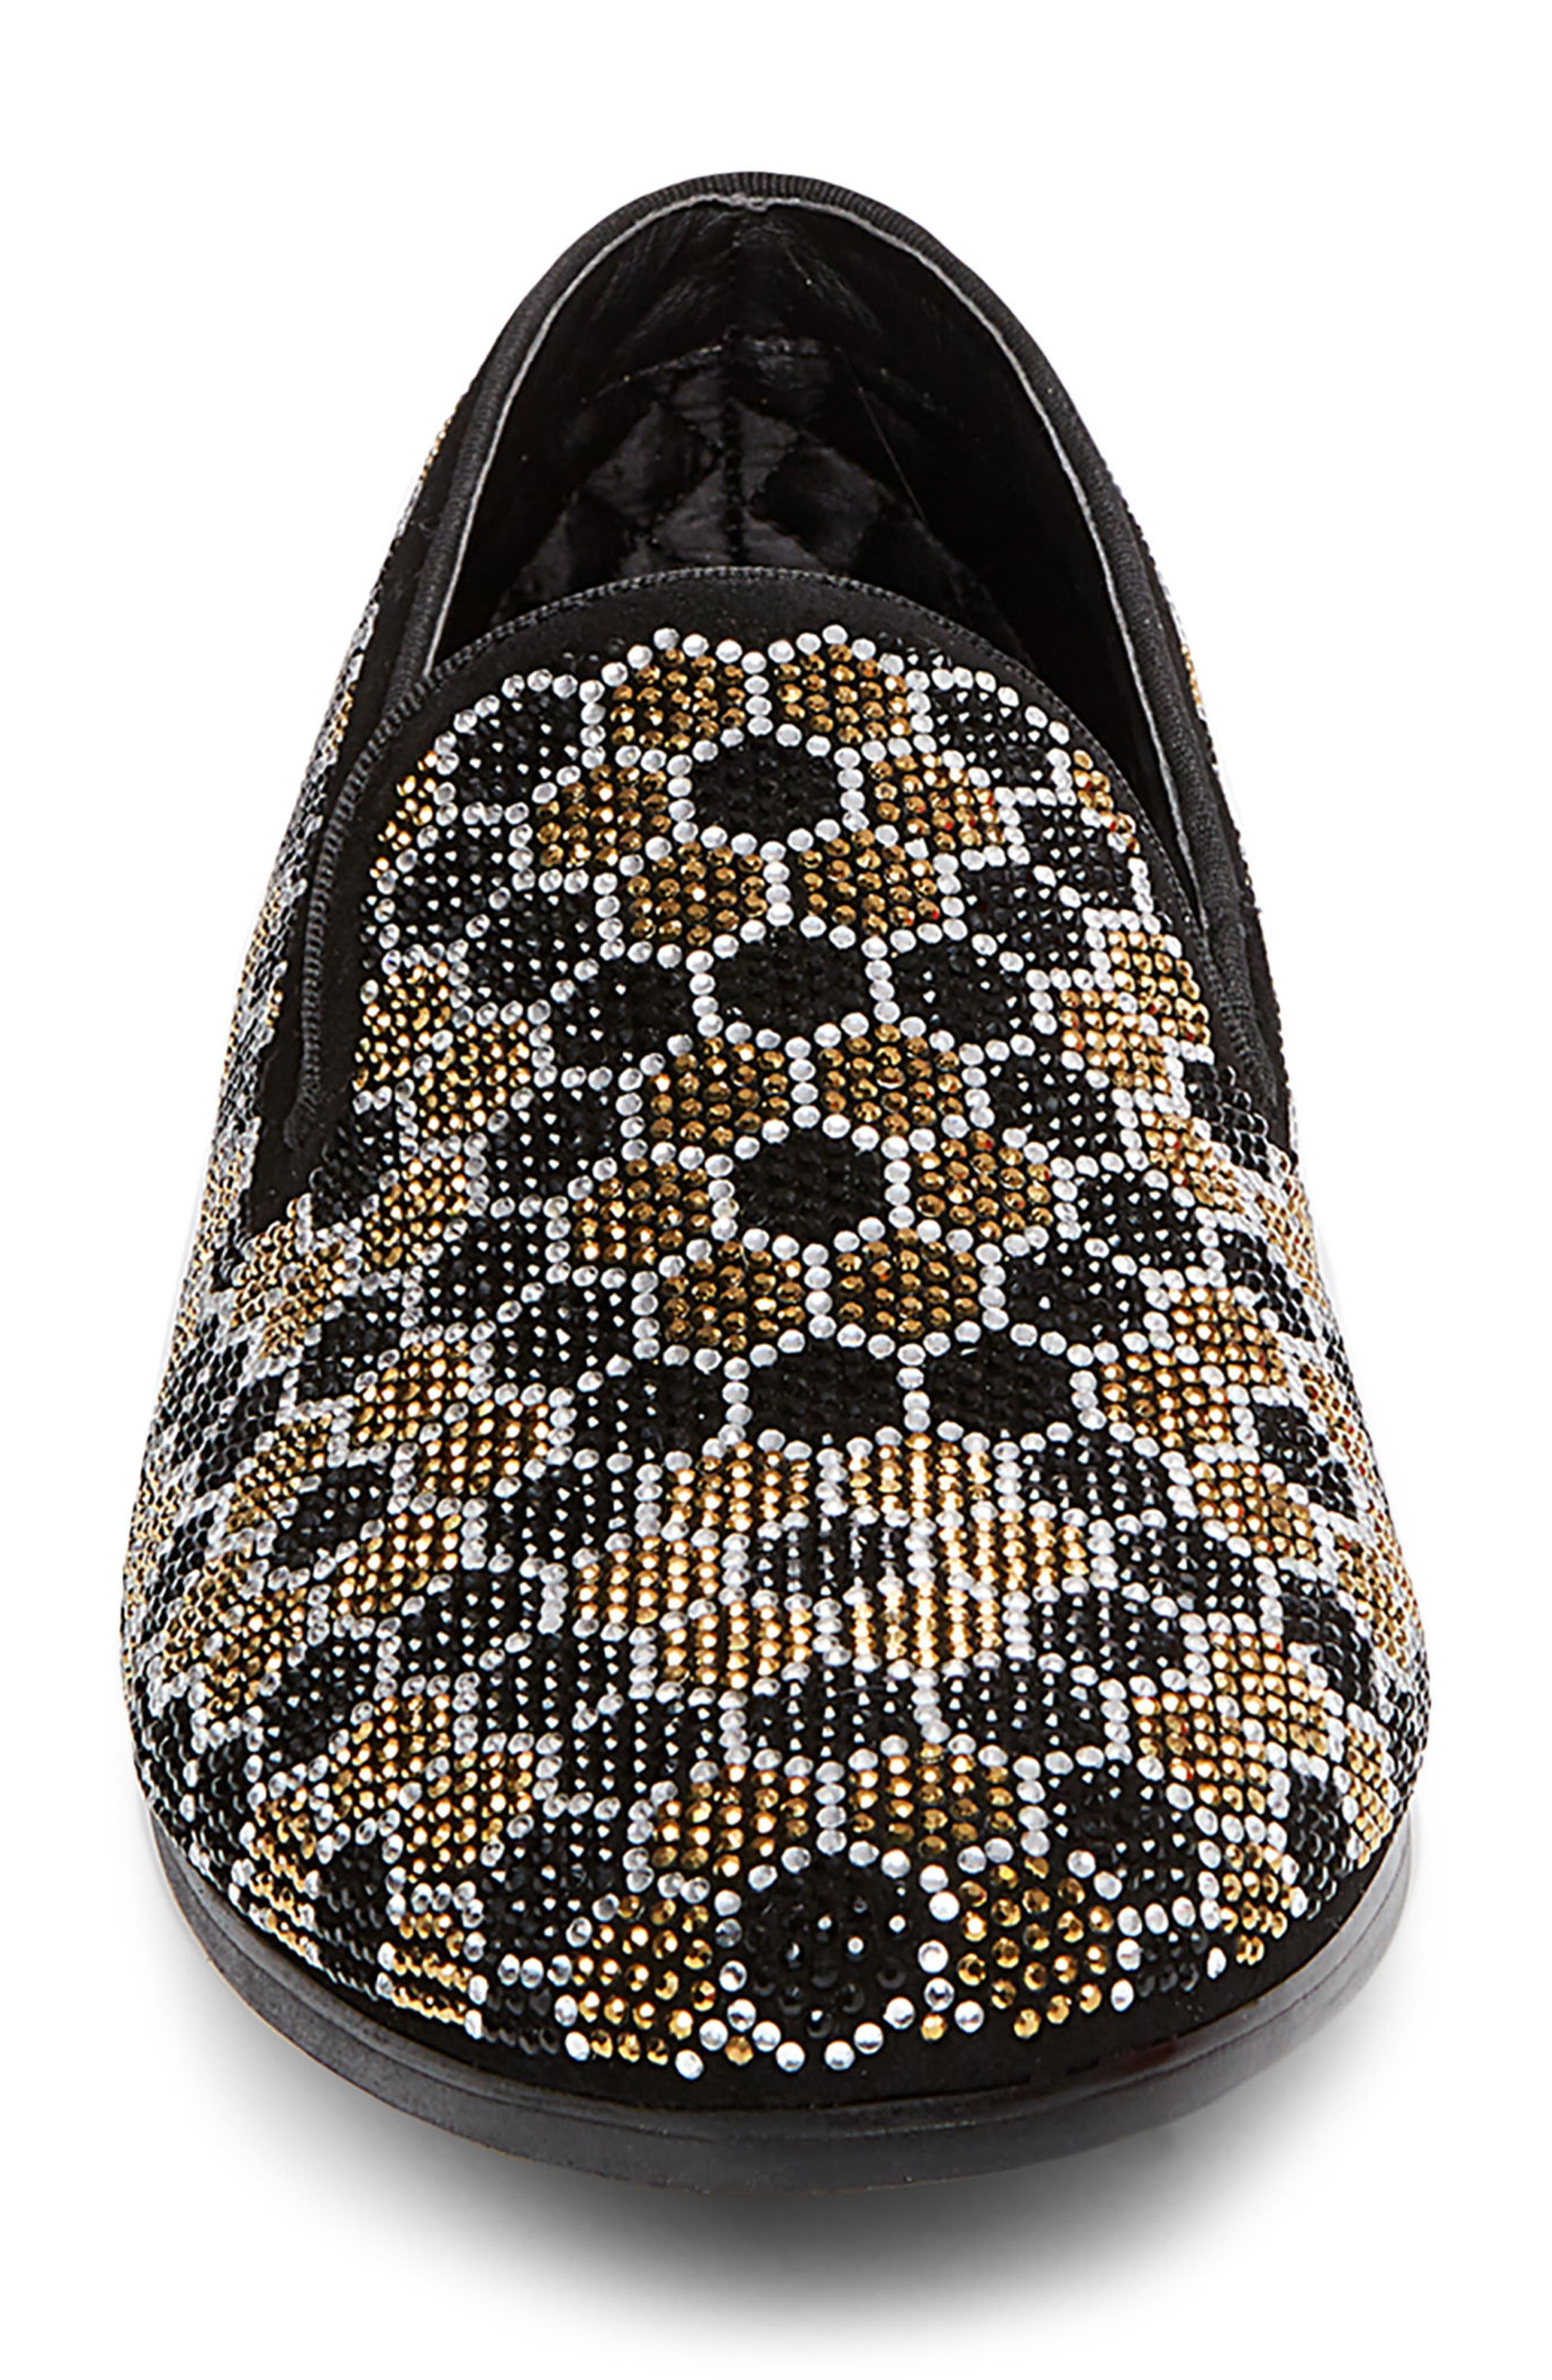 Caspian Studded Venetian Loafer,                             Alternate thumbnail 4, color,                             Black/ Gold